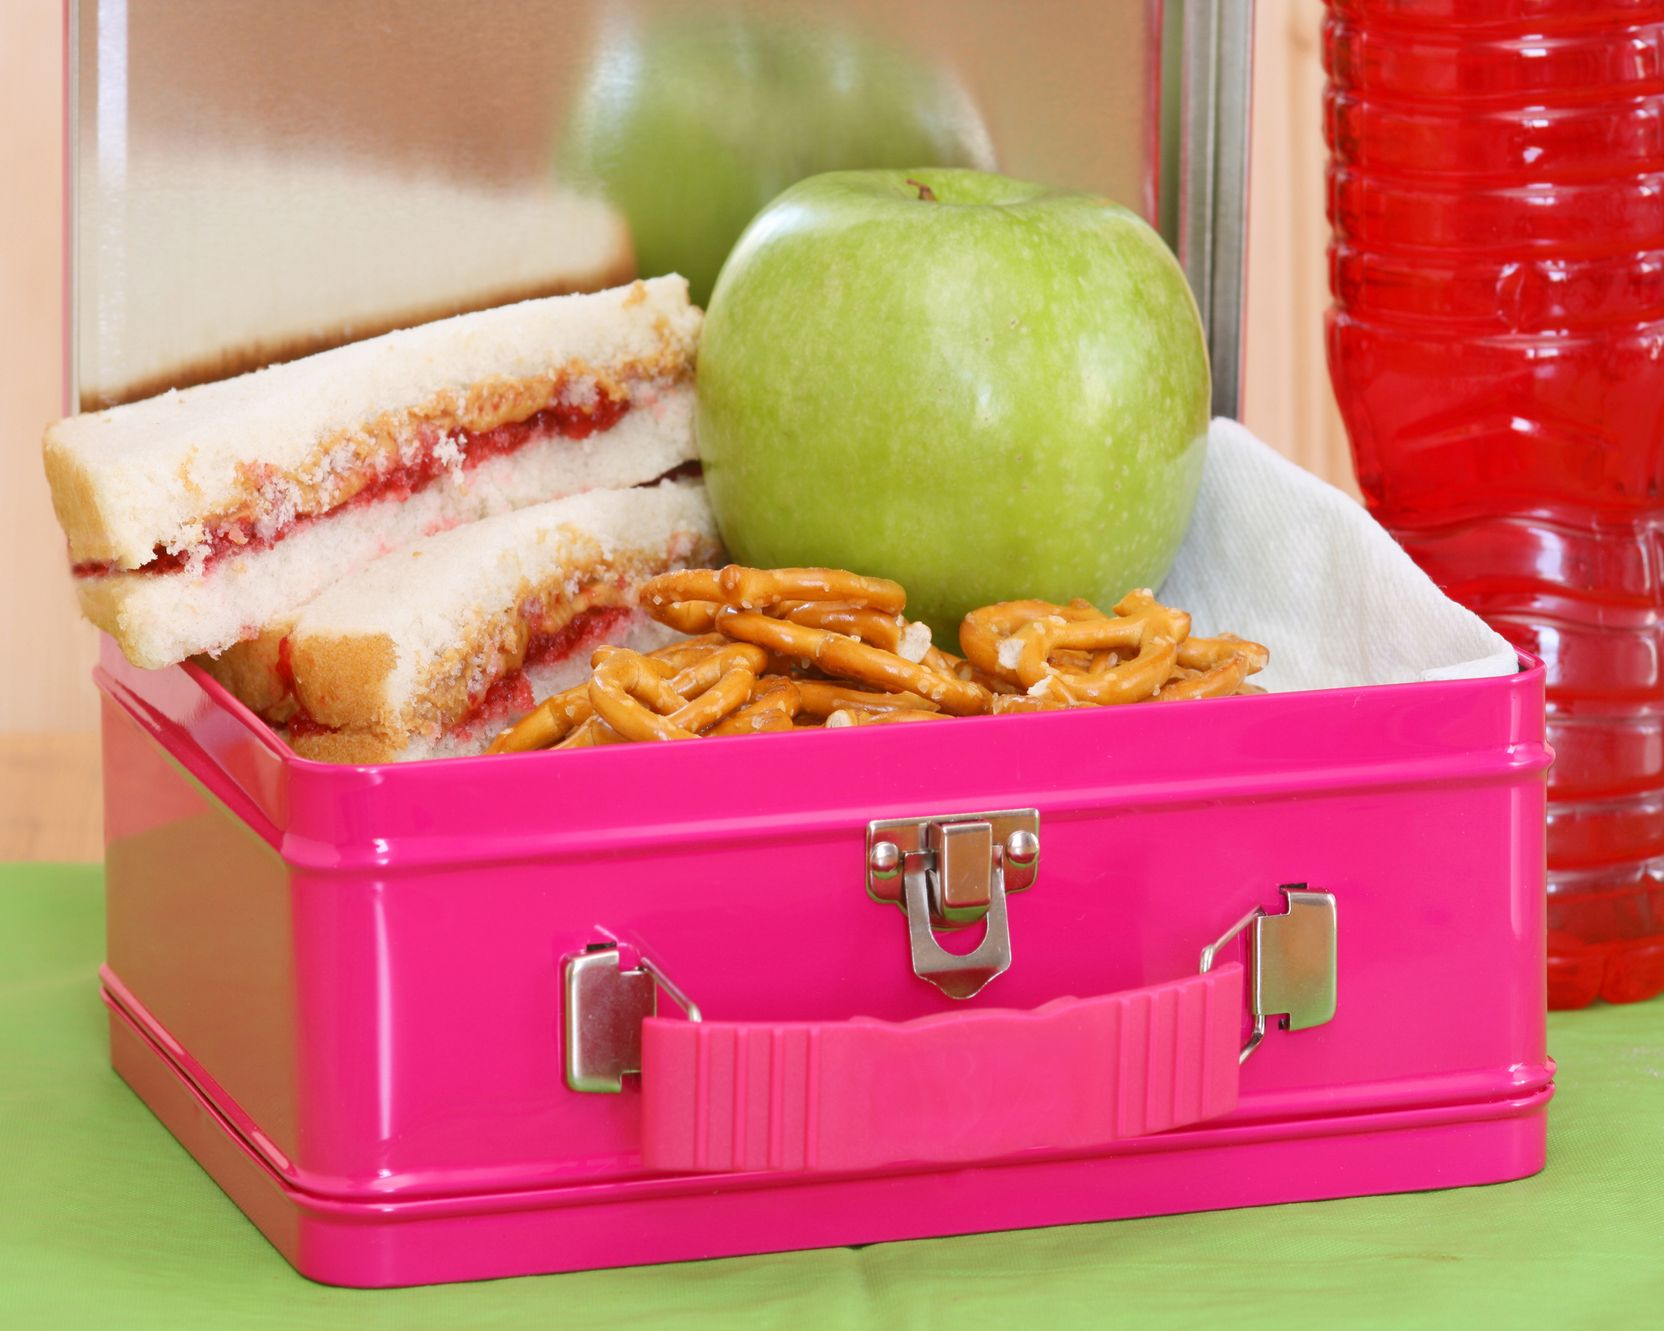 Lunch in a pink lunch box